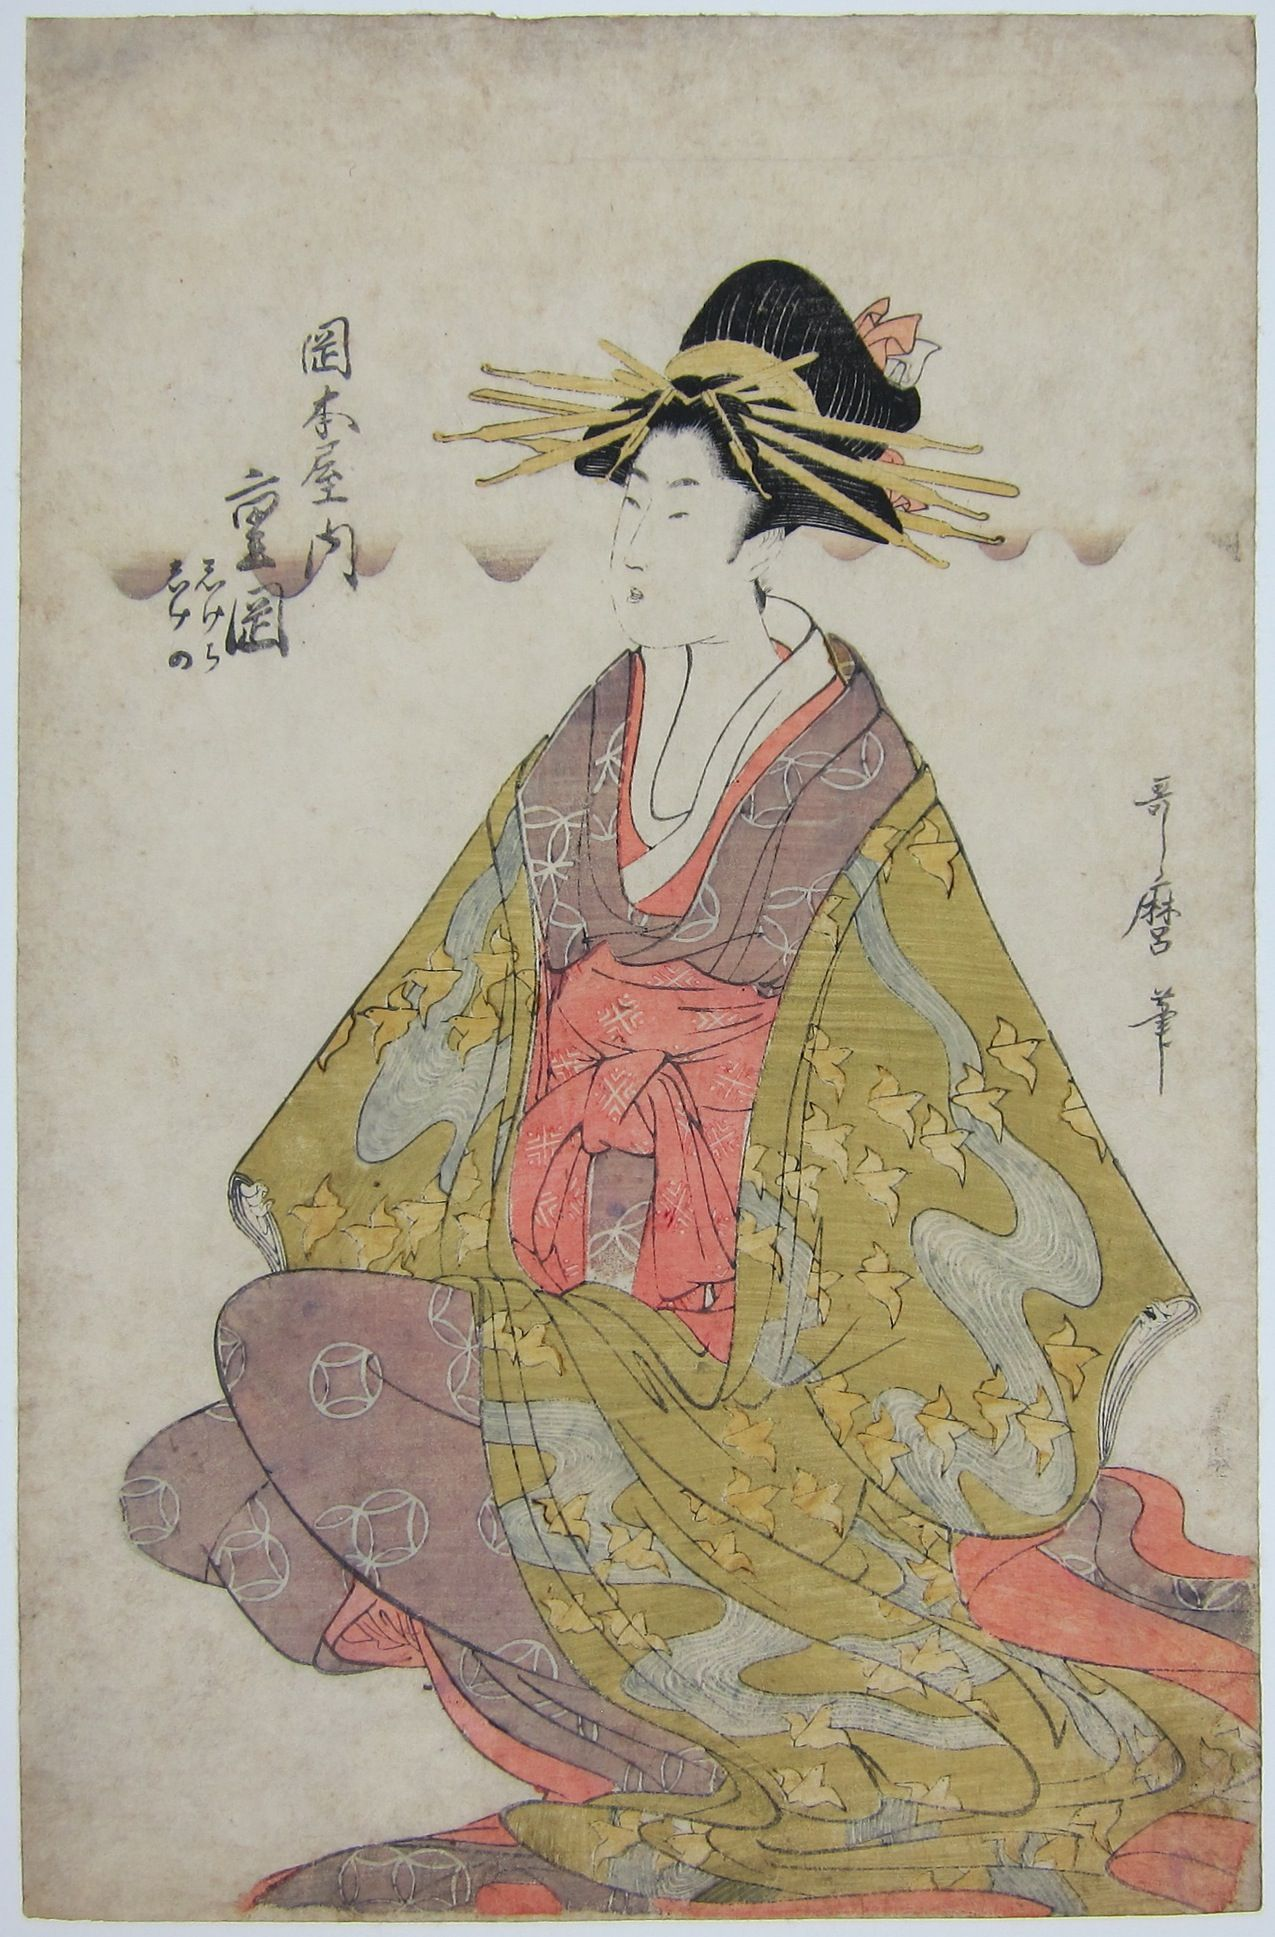 The Courtesan Shigeoka of the Okamoto-ya. c.1810-20